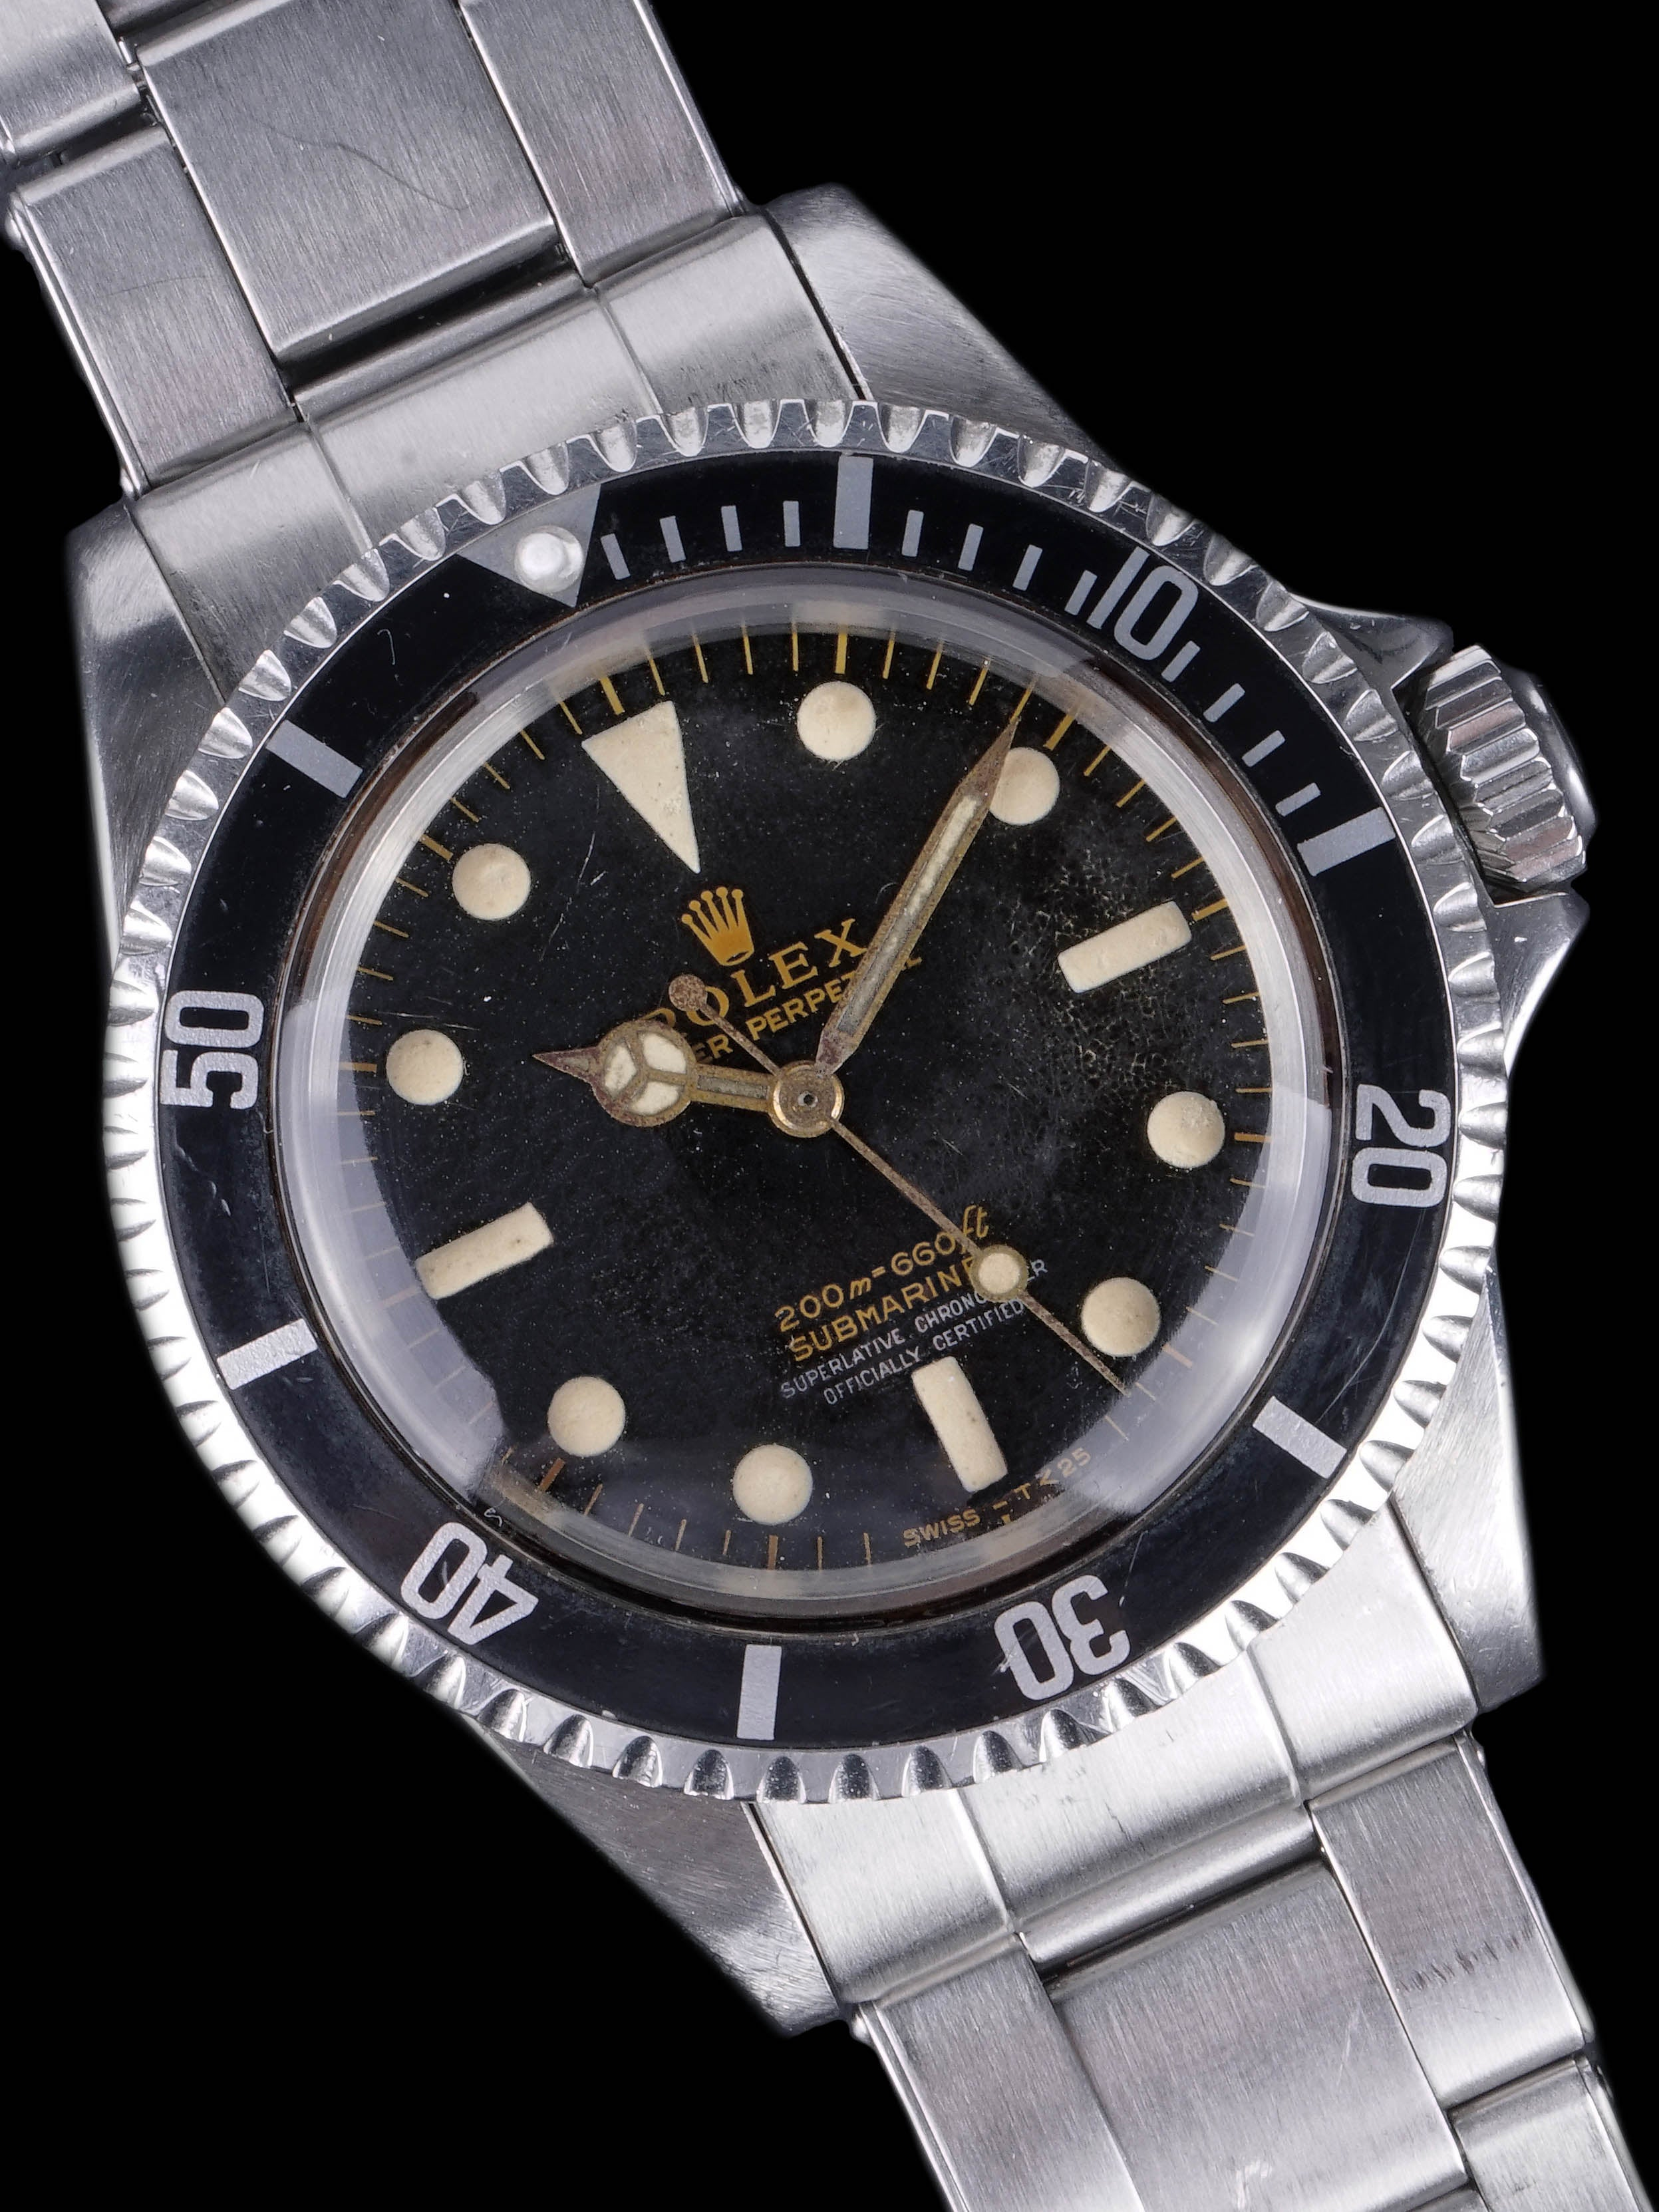 1965 Rolex Submariner (Ref. 5512) Two Color Gilt Dial